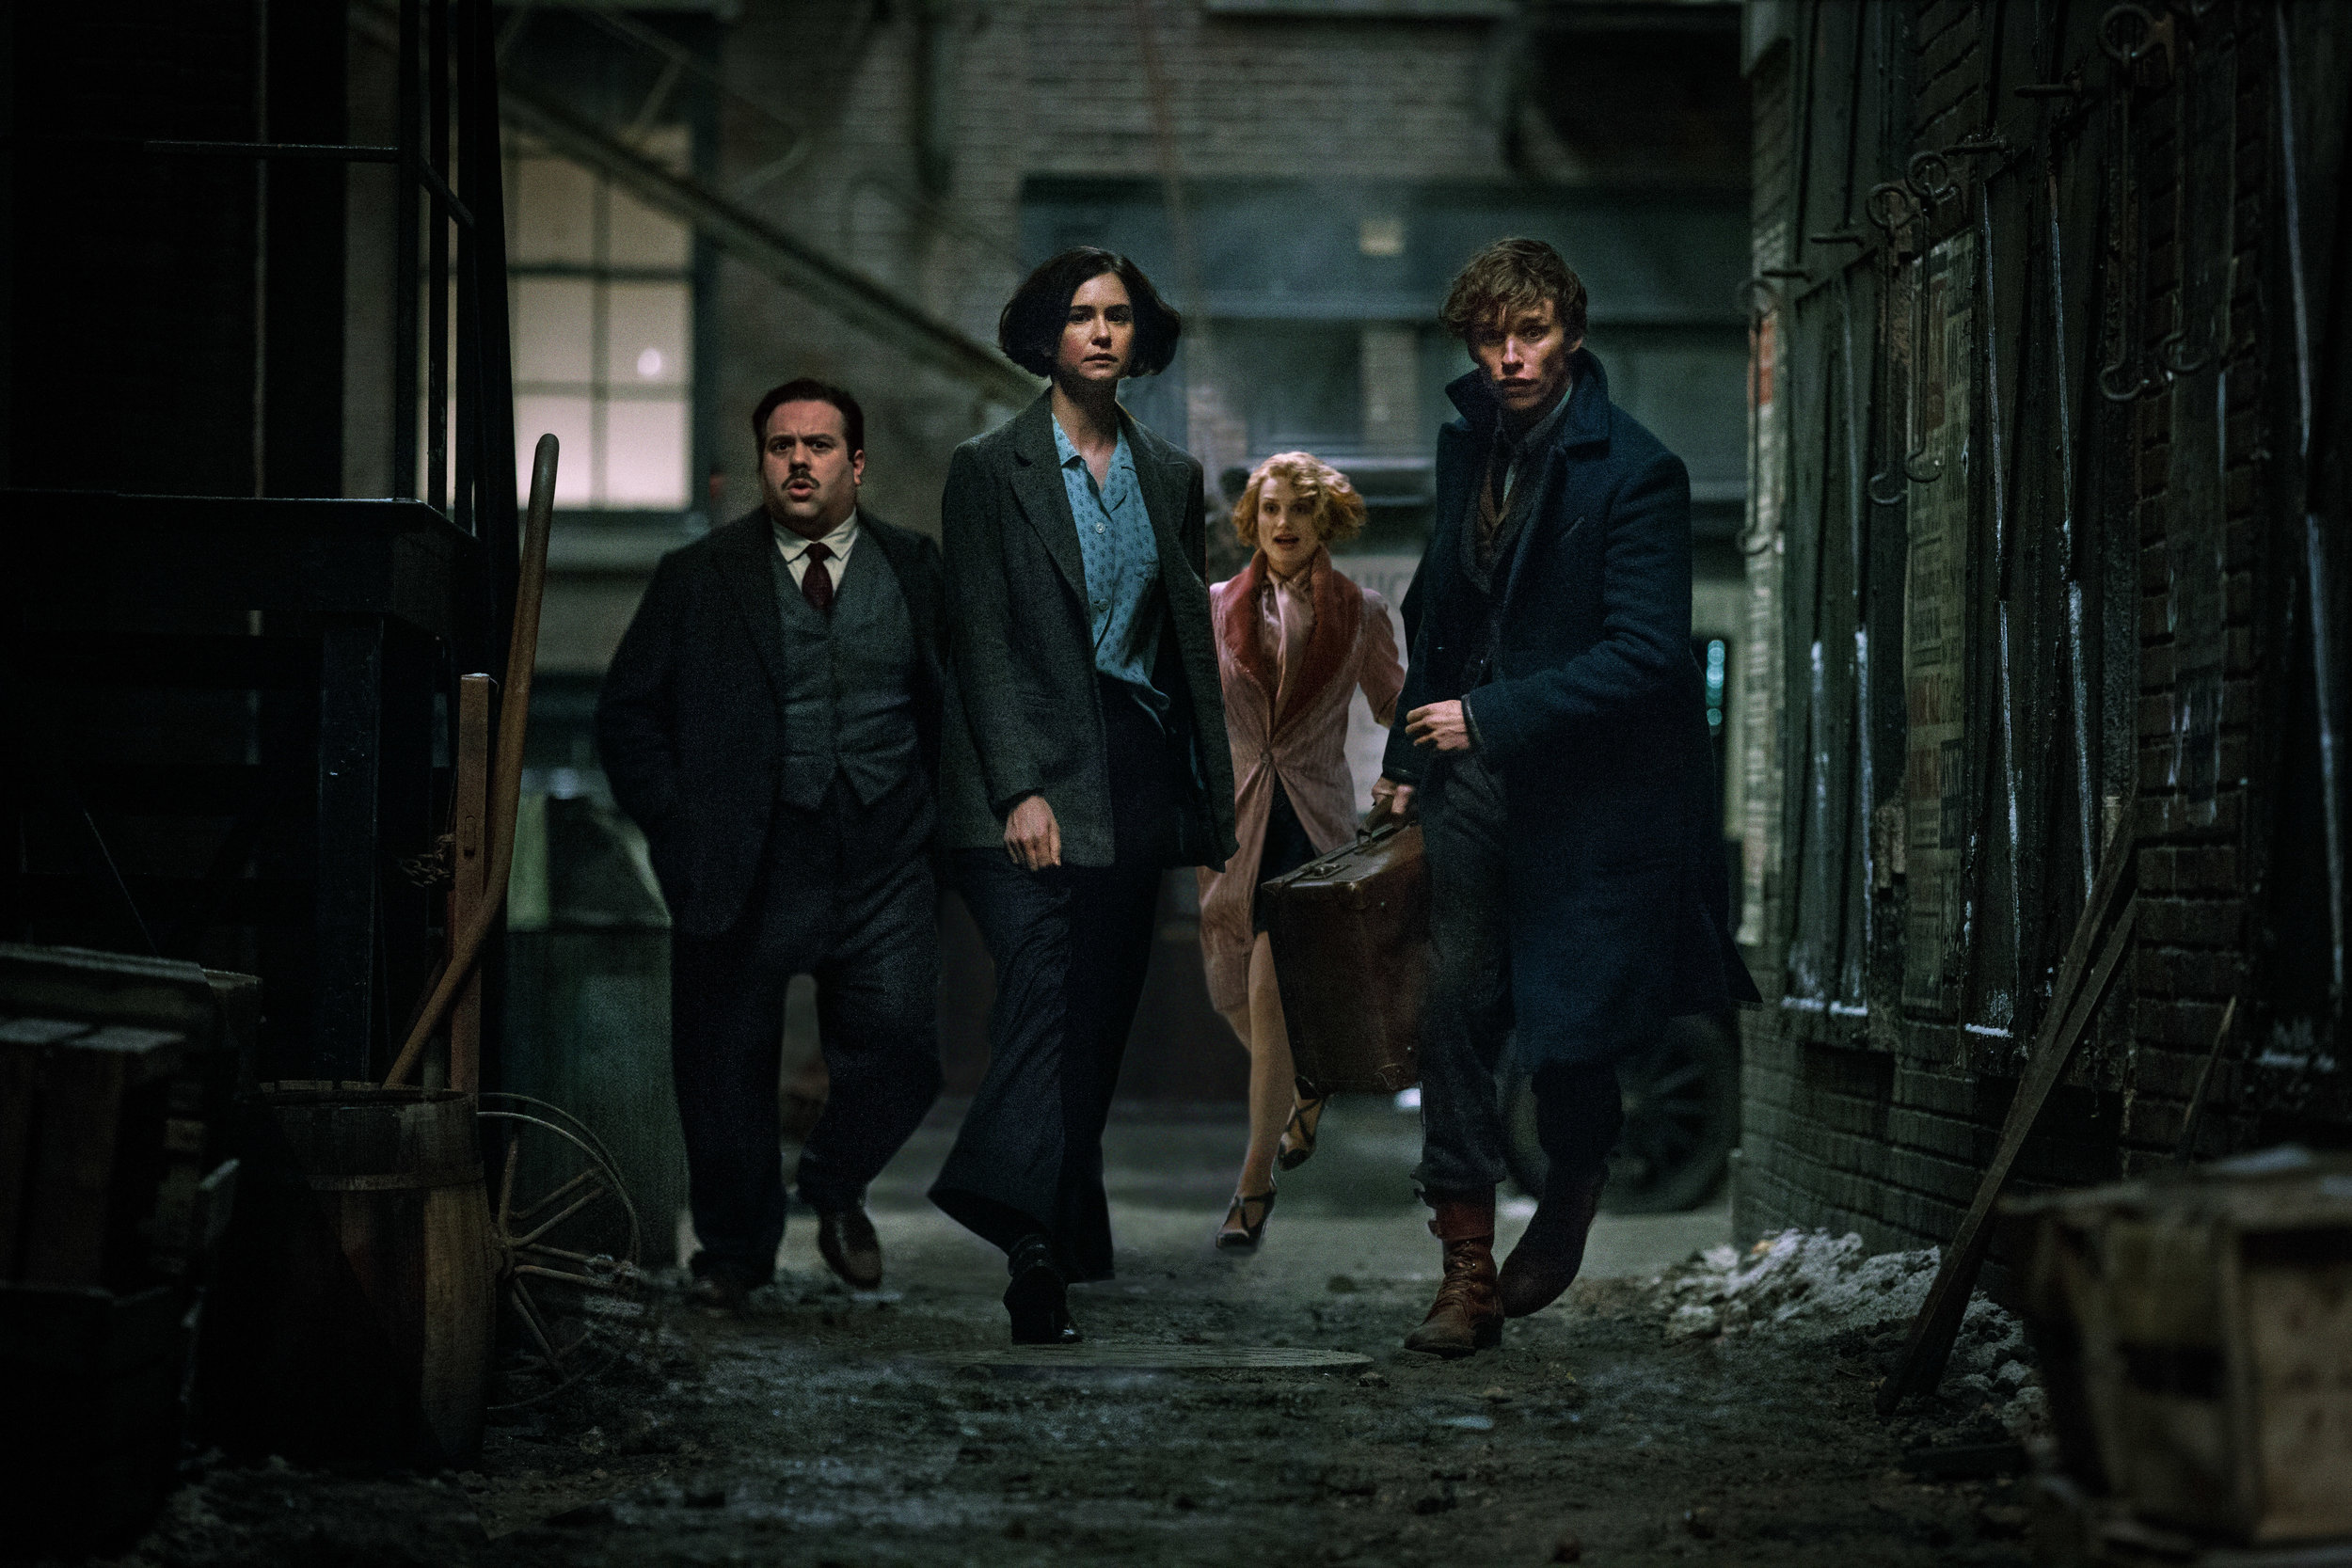 fantastic-beasts-and-where-to-find-them-movie-cast.jpg